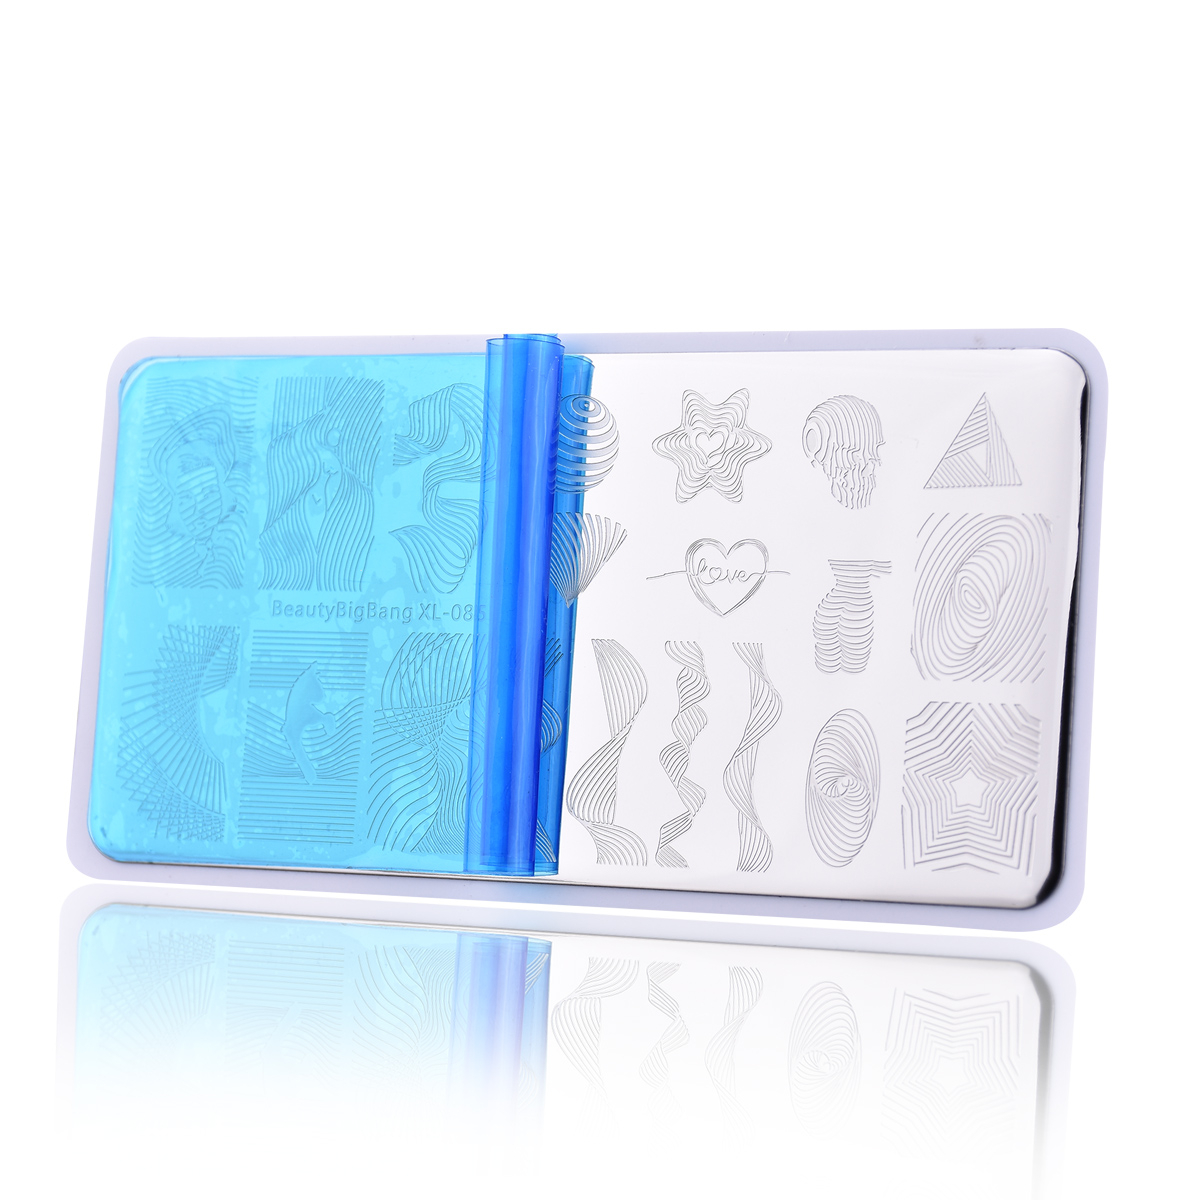 Image 3 - Beautybigbang Stamping Plates Nail Art Accessories Striped Lines Wave Heart Geometry Image Nails Stamping Print Template XL 085-in Nail Art Templates from Beauty & Health